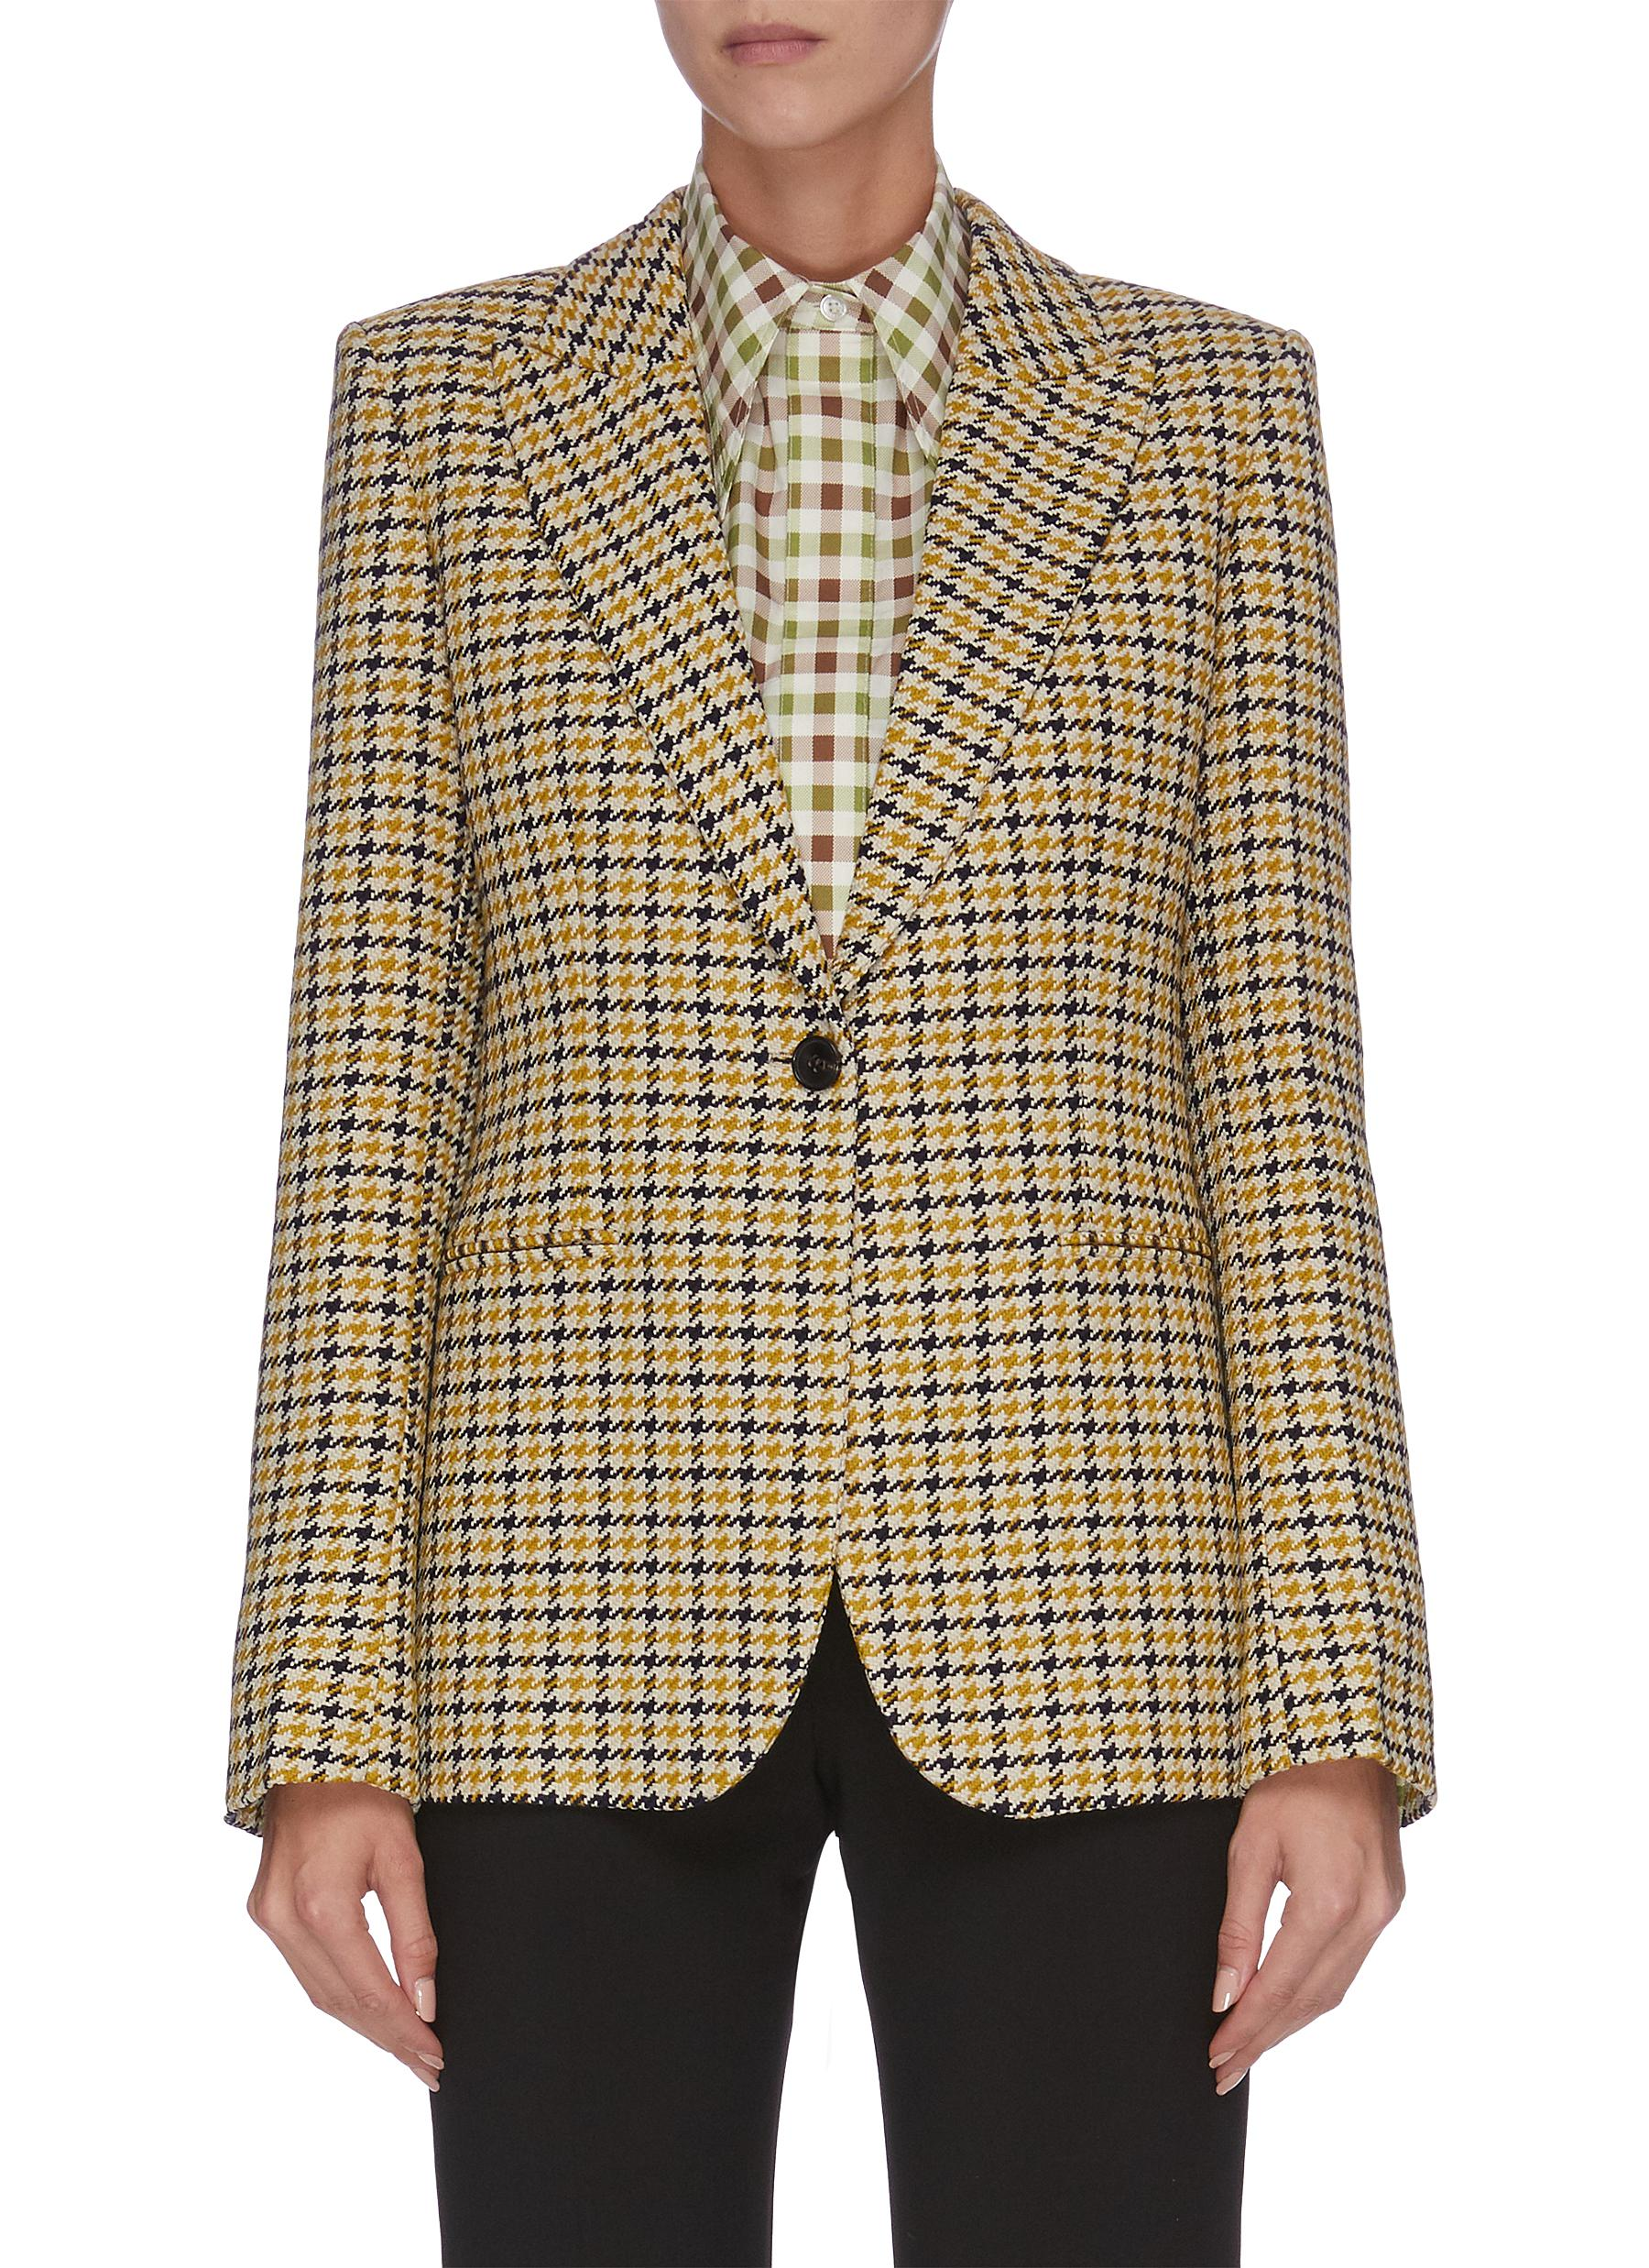 Peaked lapel houndstooth check plaid virgin wool blazer by Victoria Beckham